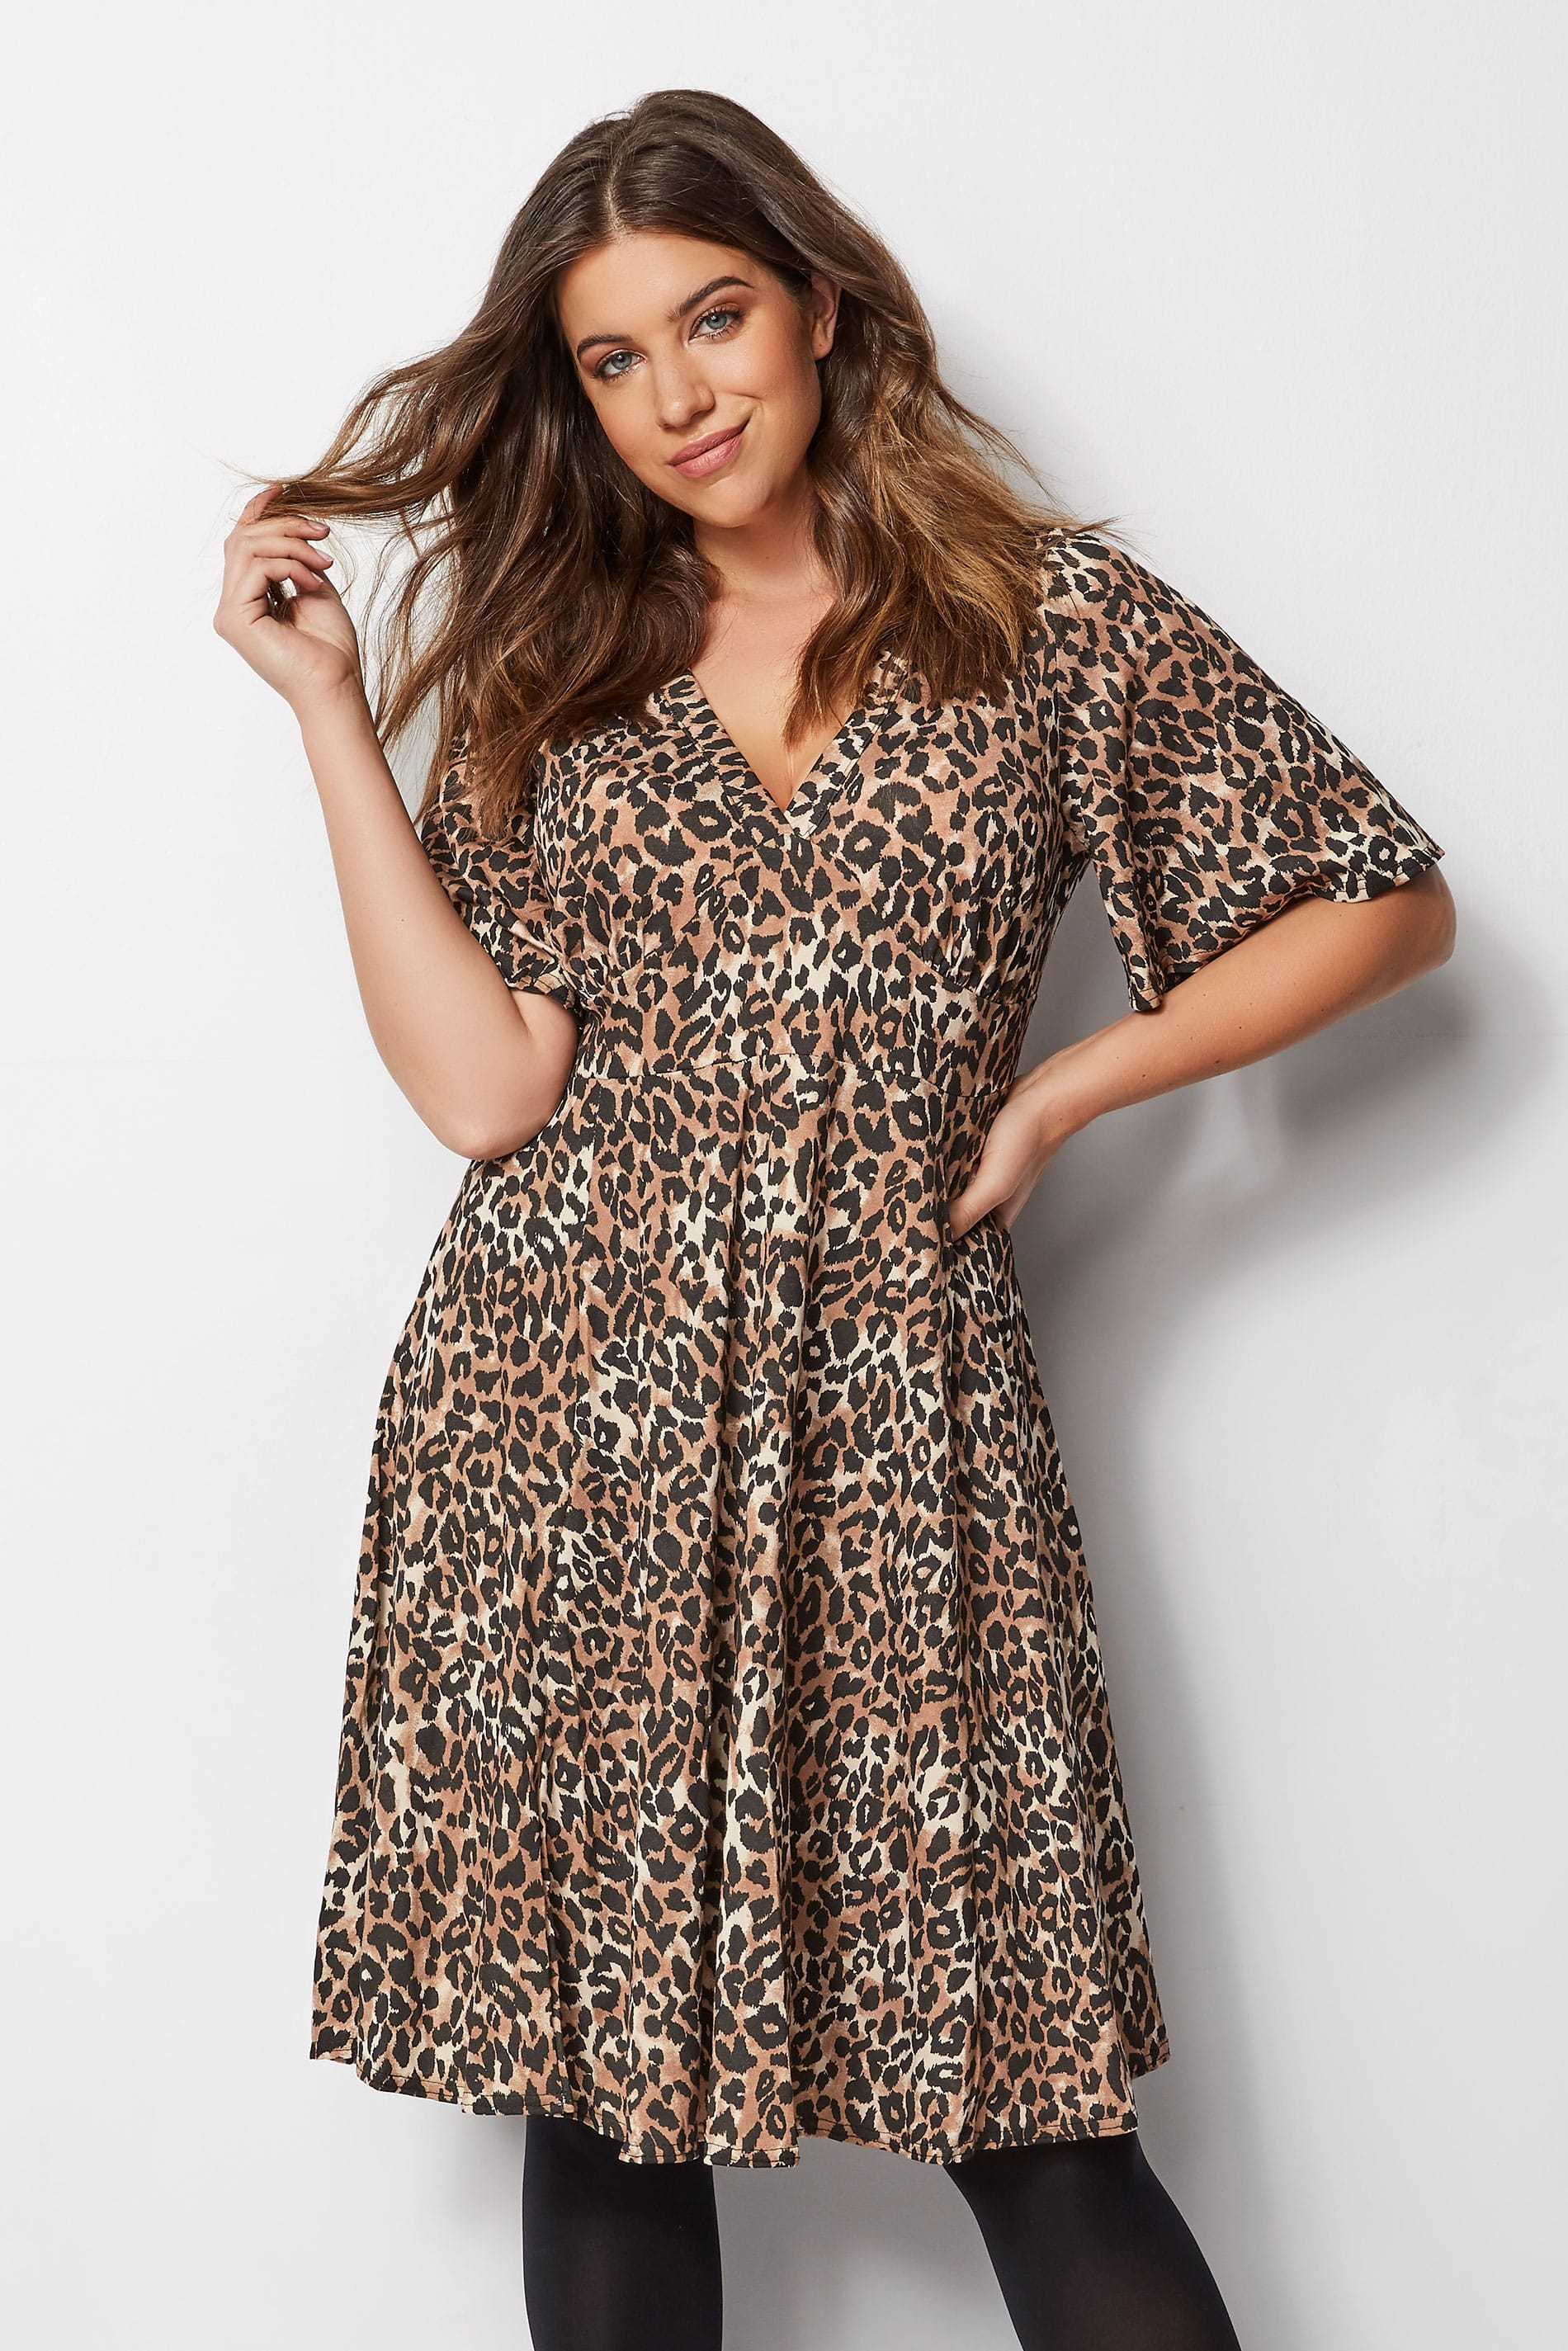 a745e1f03110 Brown Leopard Print Fit & Flare Dress, Plus size 16 to 36